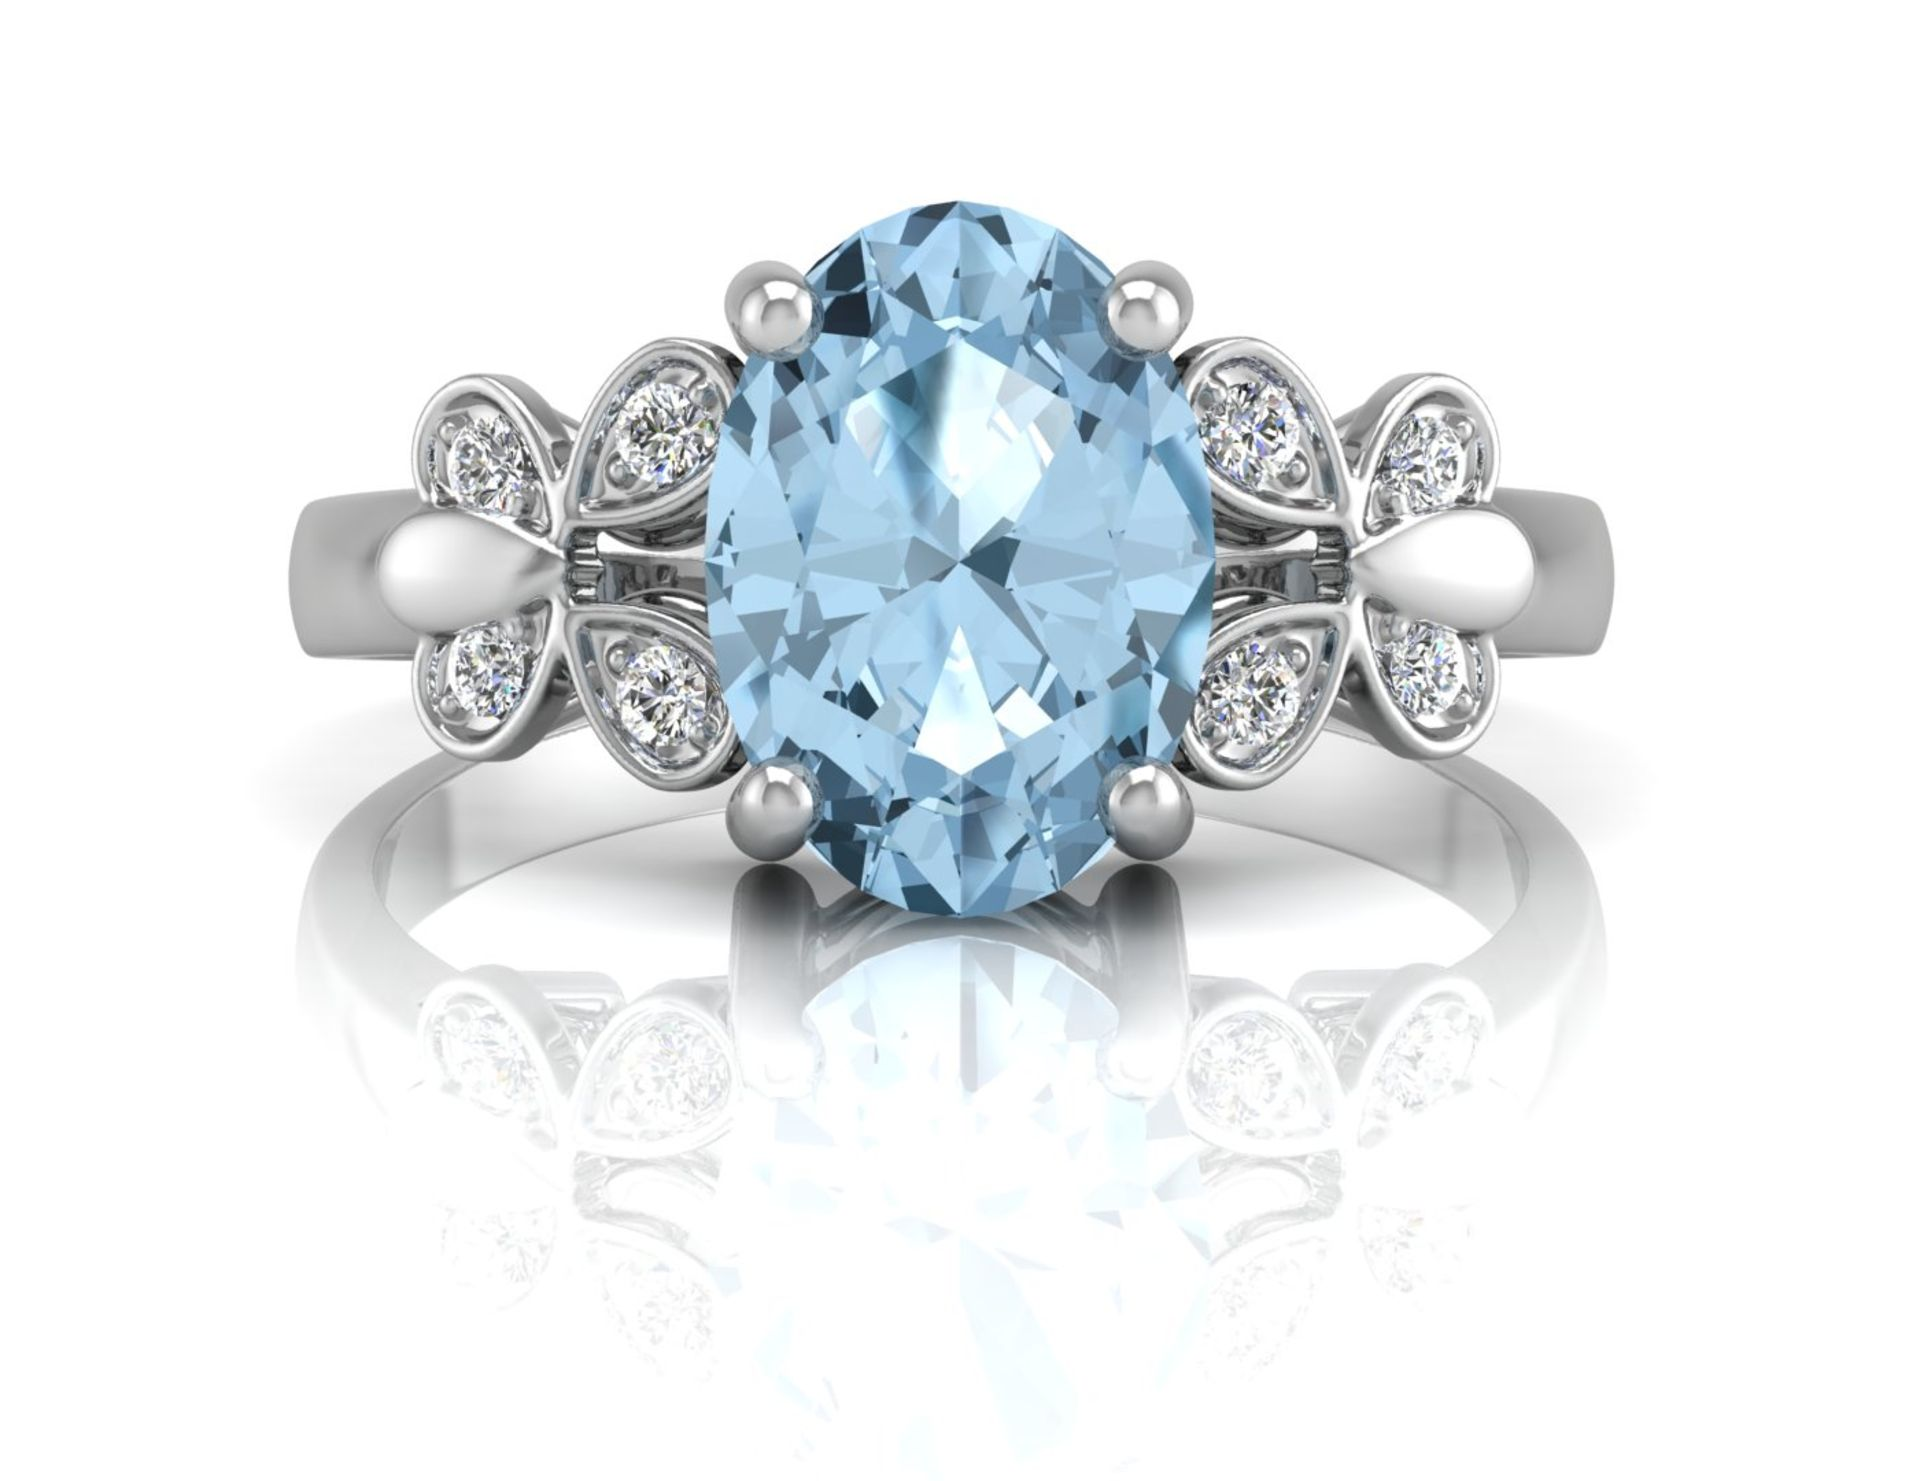 Lot 43 - 9ct White Gold Diamond And Blue Topaz Ring 0.03